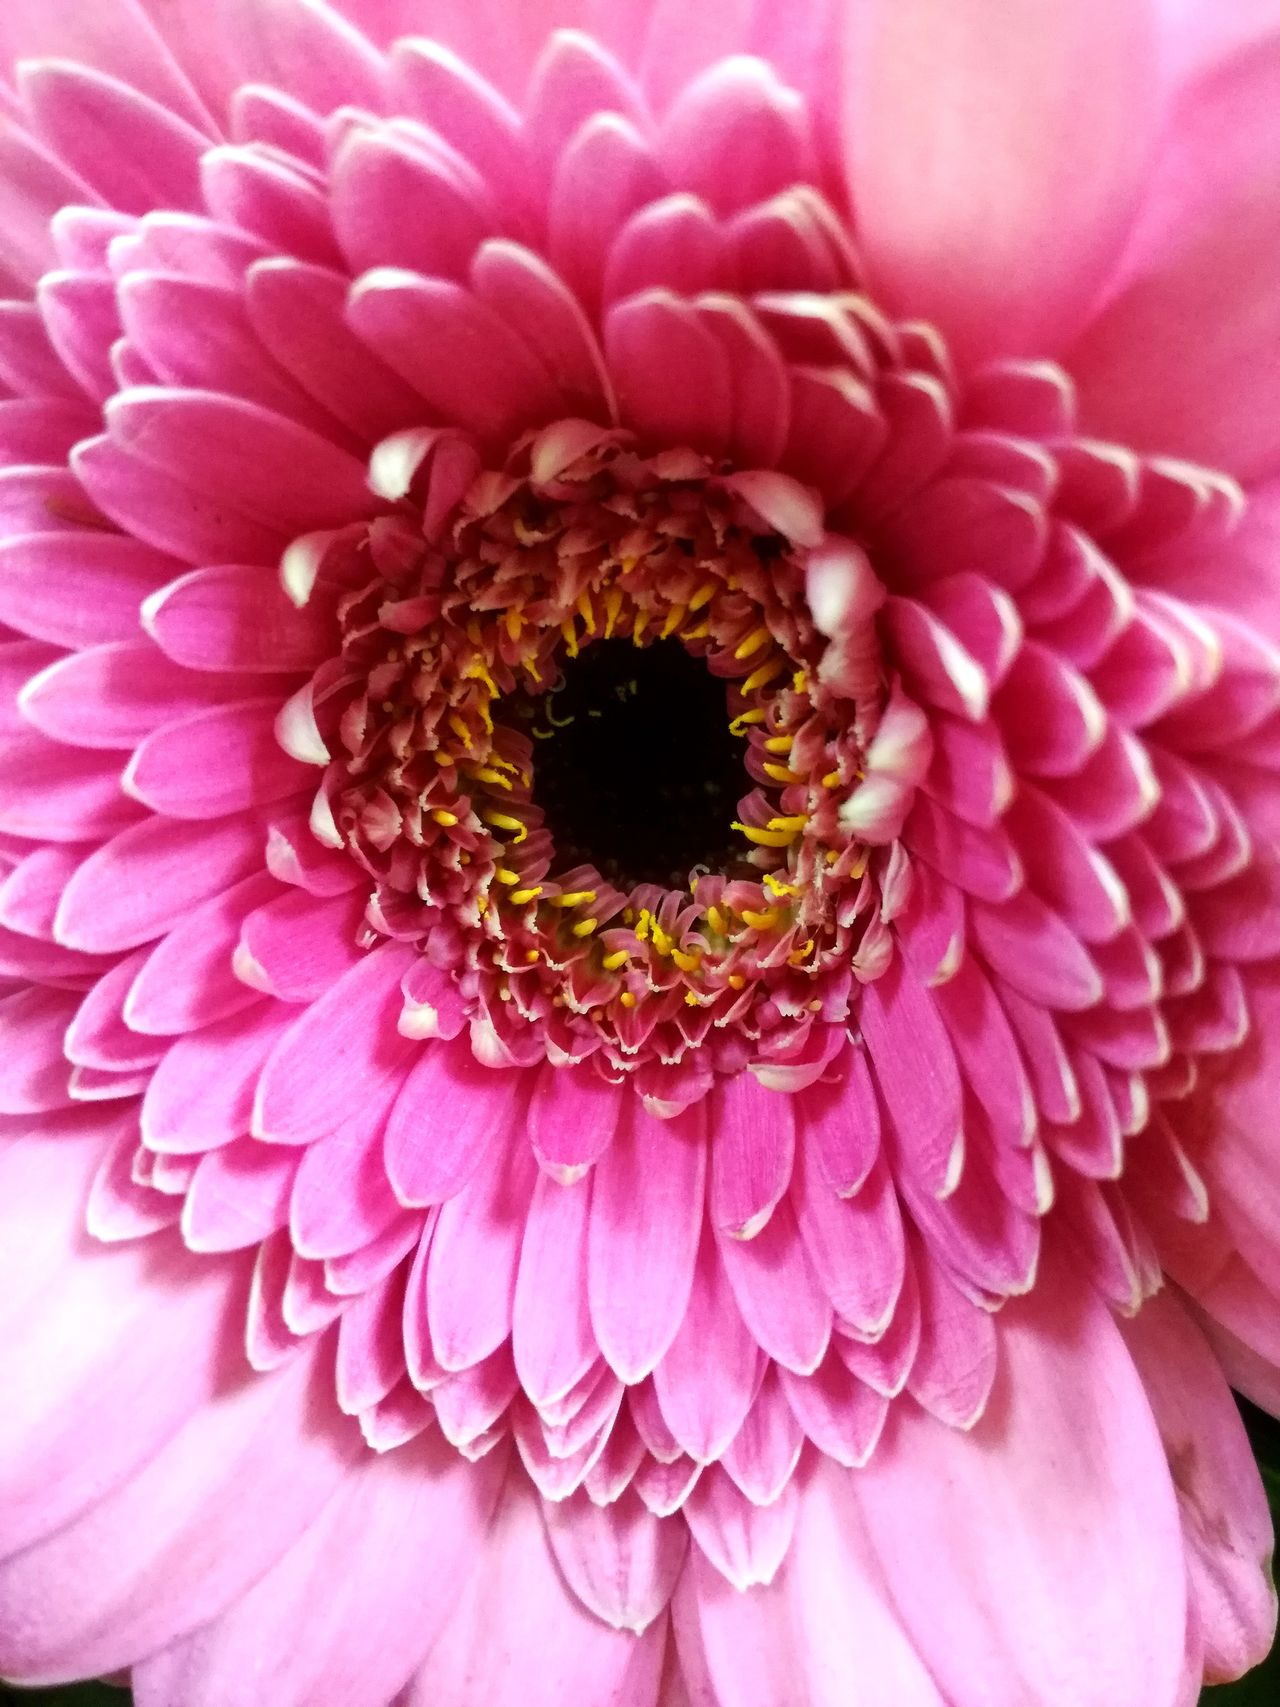 Flower Petal Fragility Beauty In Nature Flower Head Nature Freshness Springtime Blooming Day Gerbera Flower Gerberdaisy Growth No People Pink Color PlantPurple Gerberas Blossom Gerbera